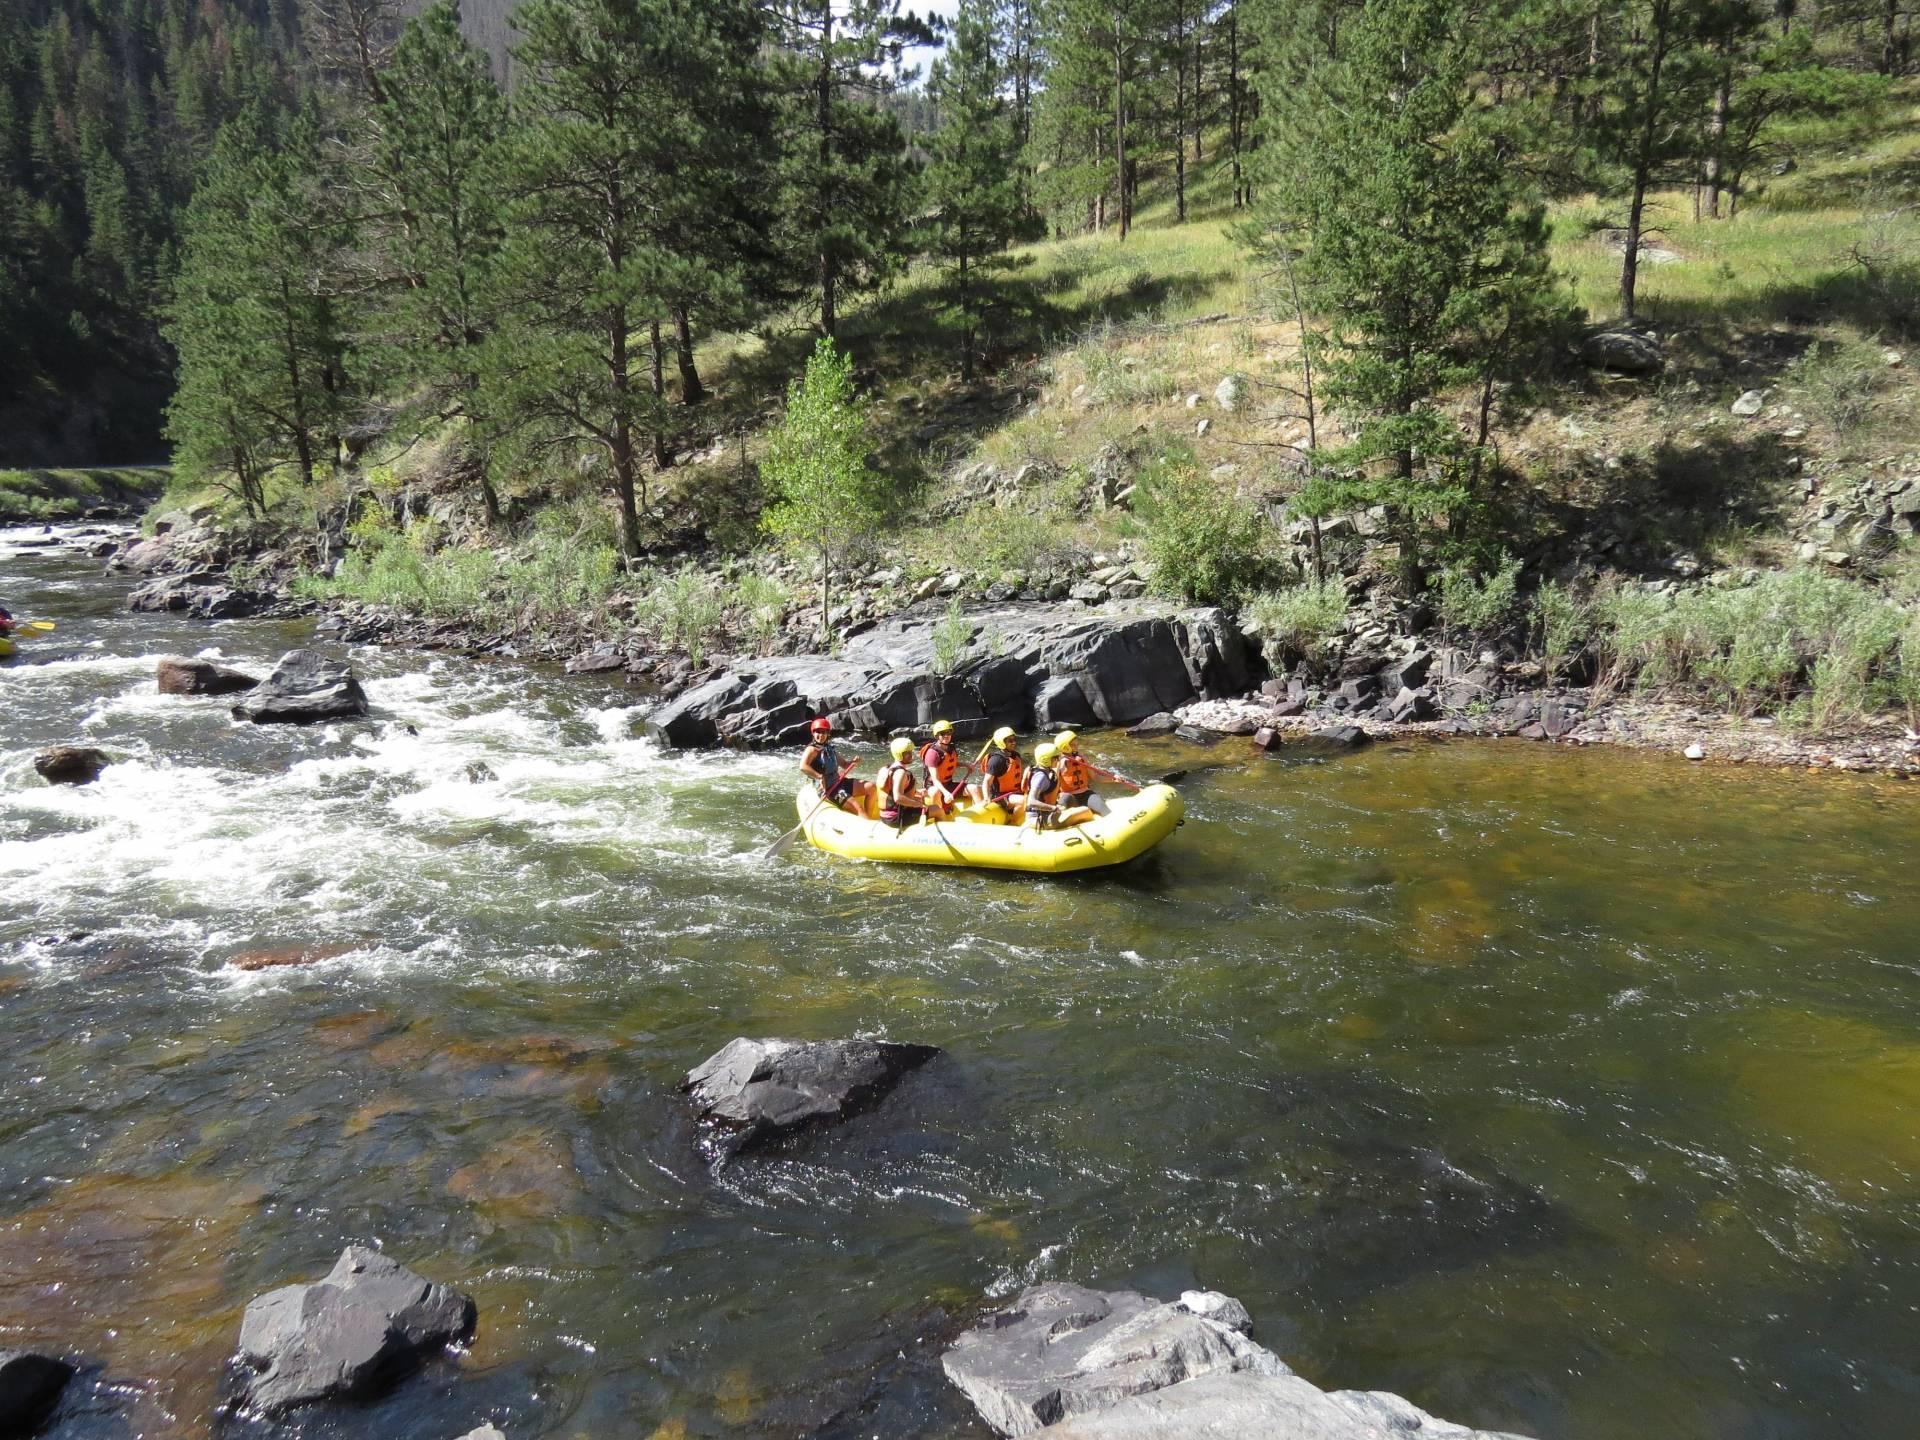 My Whitewater Rafting Adventure at La Poudre River, Colorado